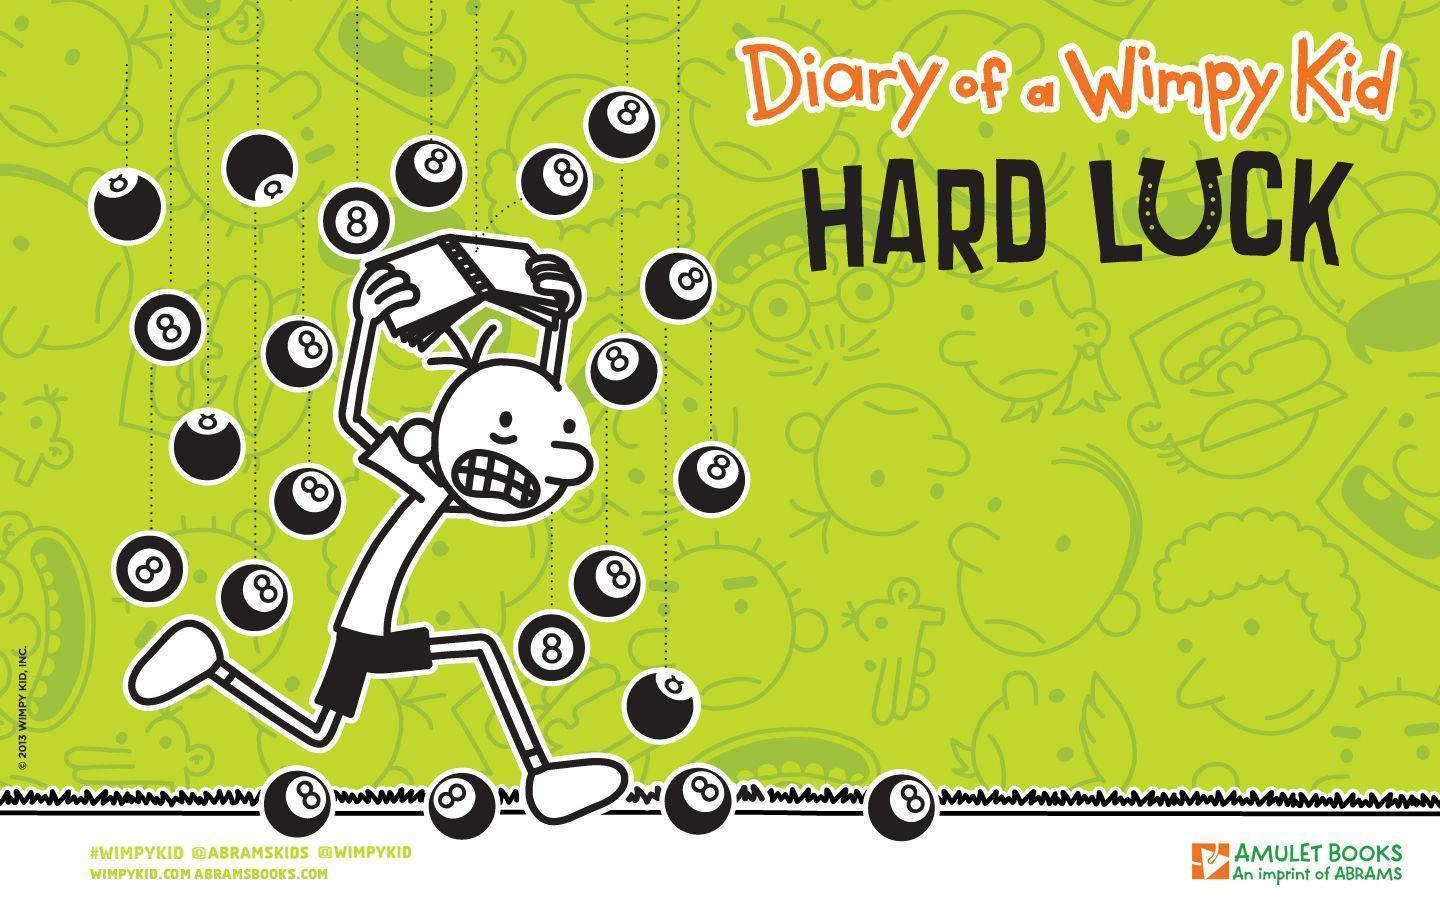 Diary of a wimpy kid wallpapers wallpaper cave image wimpy wallpaper 1440x904g diary of a wimpy kid wiki solutioingenieria Choice Image